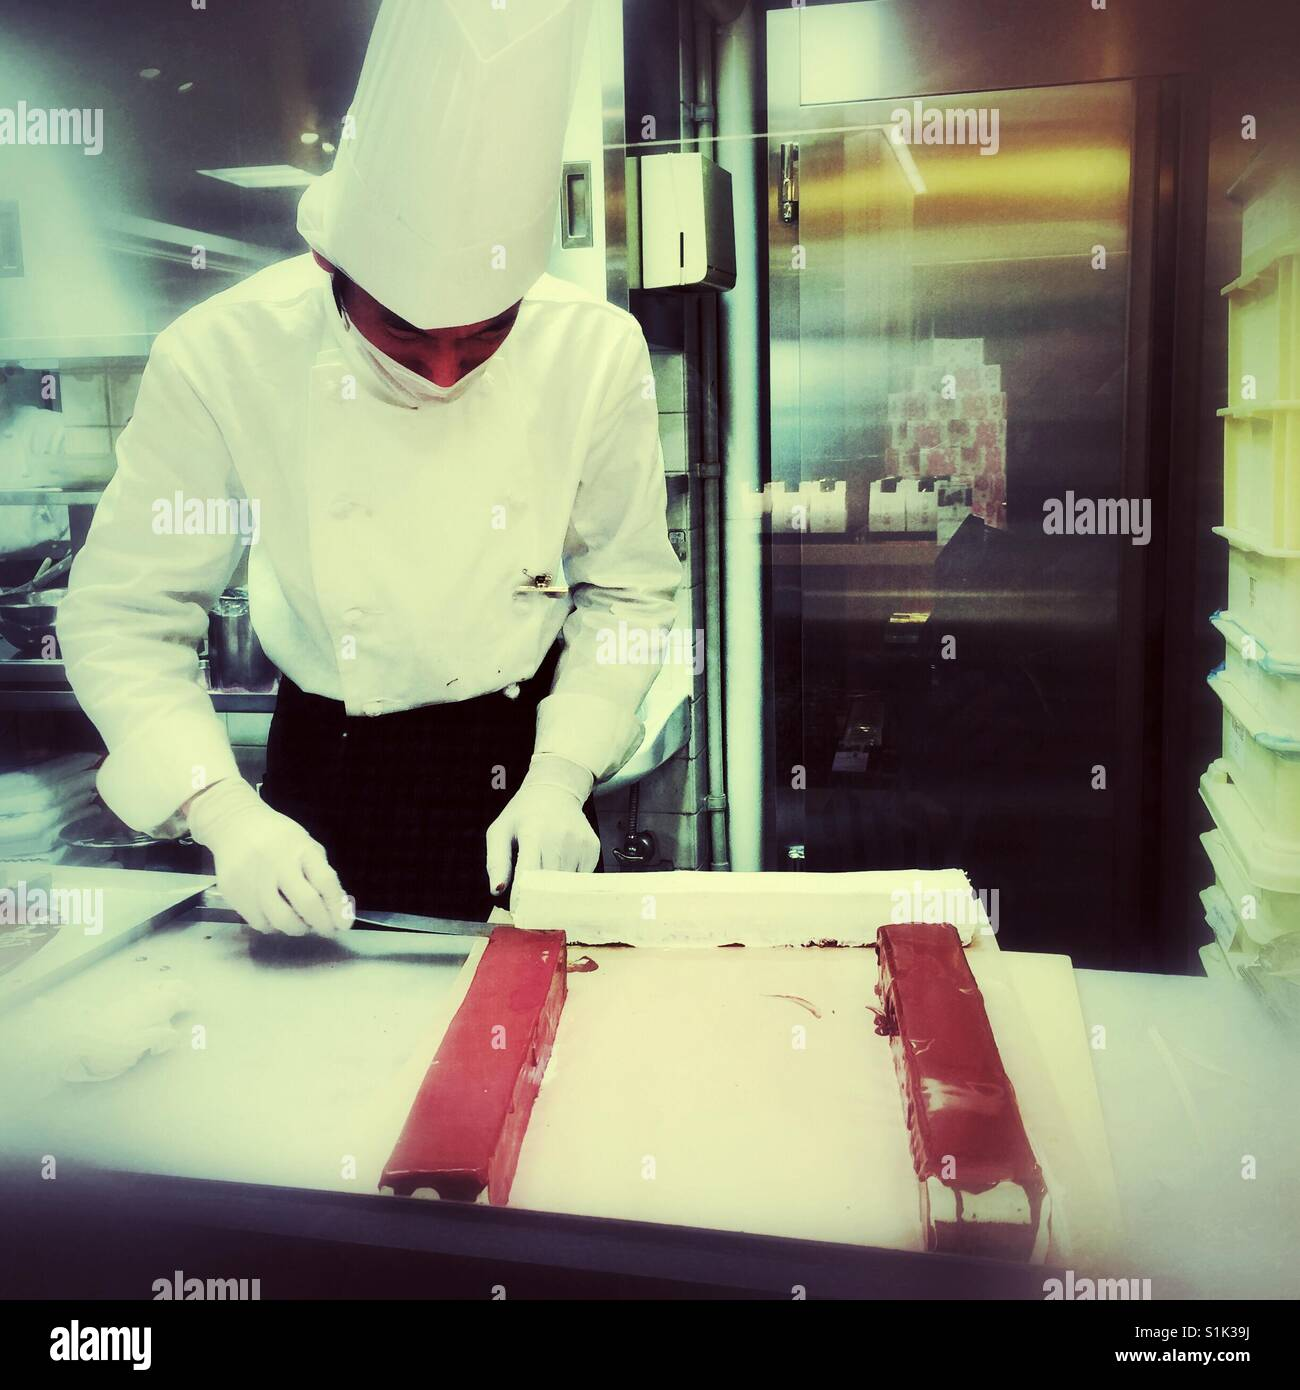 Pastry chef in one of the Kyoto's department stores working on glazing cake - Stock Image